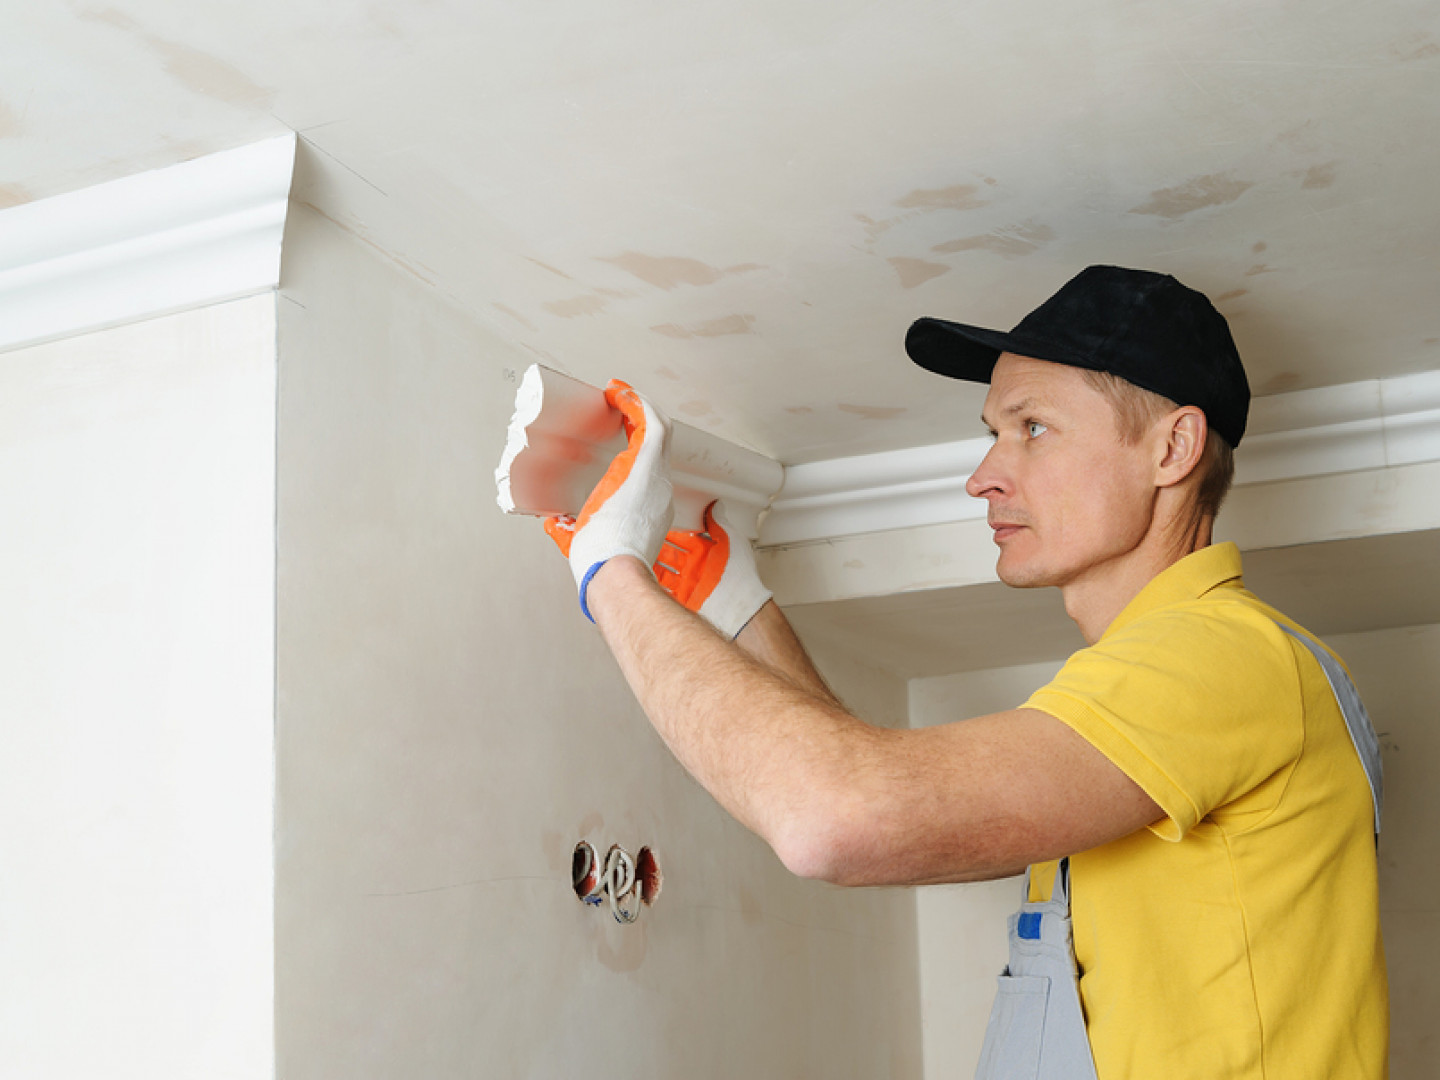 Banish Mold From Your Home or Commercial Building